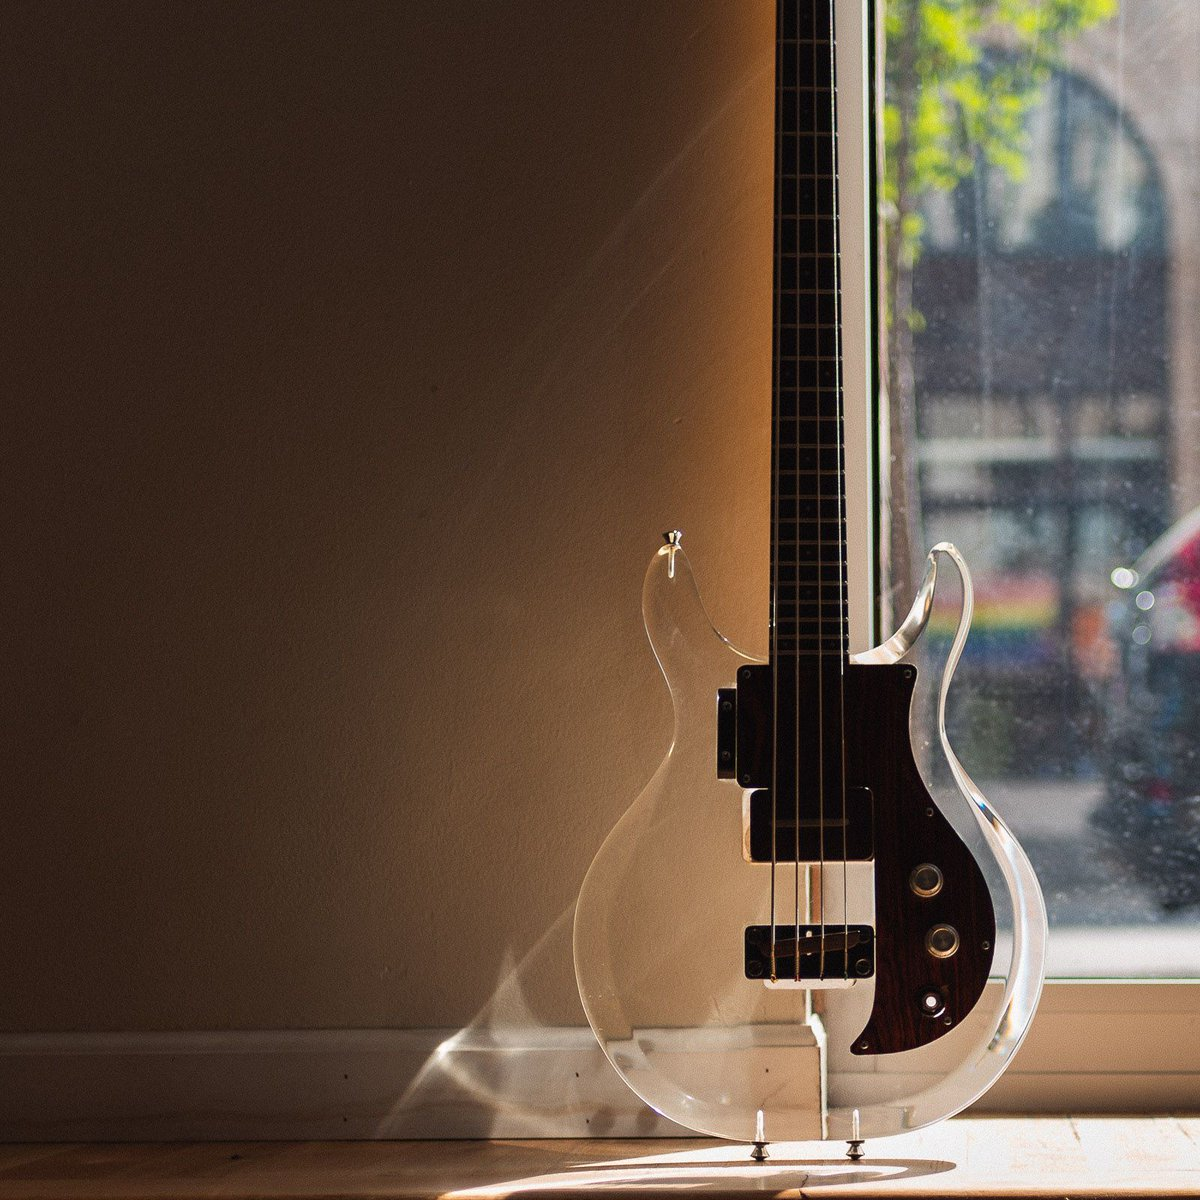 Throwing it back to when it was 69º and sunny and this '69 @Ampeg Dan Armstrong Lucite bass was just chilling in the window. https://buff.ly/39wmRLl #chicagomusicexchange #thebassment #ampeg #1969 #danarmstrong #lucite #nice #basstalk #bassplayer #tonemob #knowyourtone #gearwirepic.twitter.com/xJlBwU1XUZ